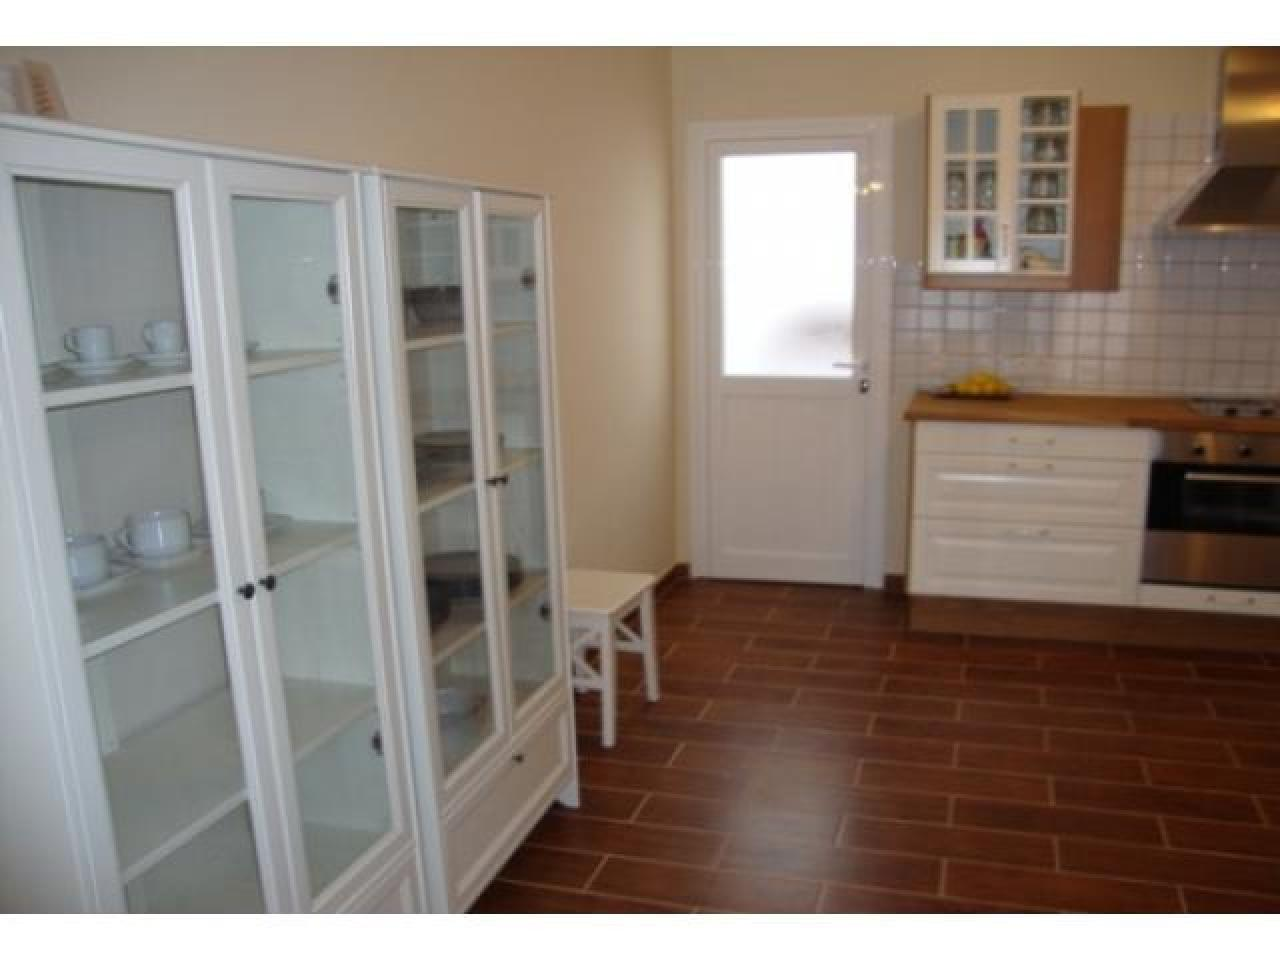 Real estate in Tenerife for sale » #274 - 2